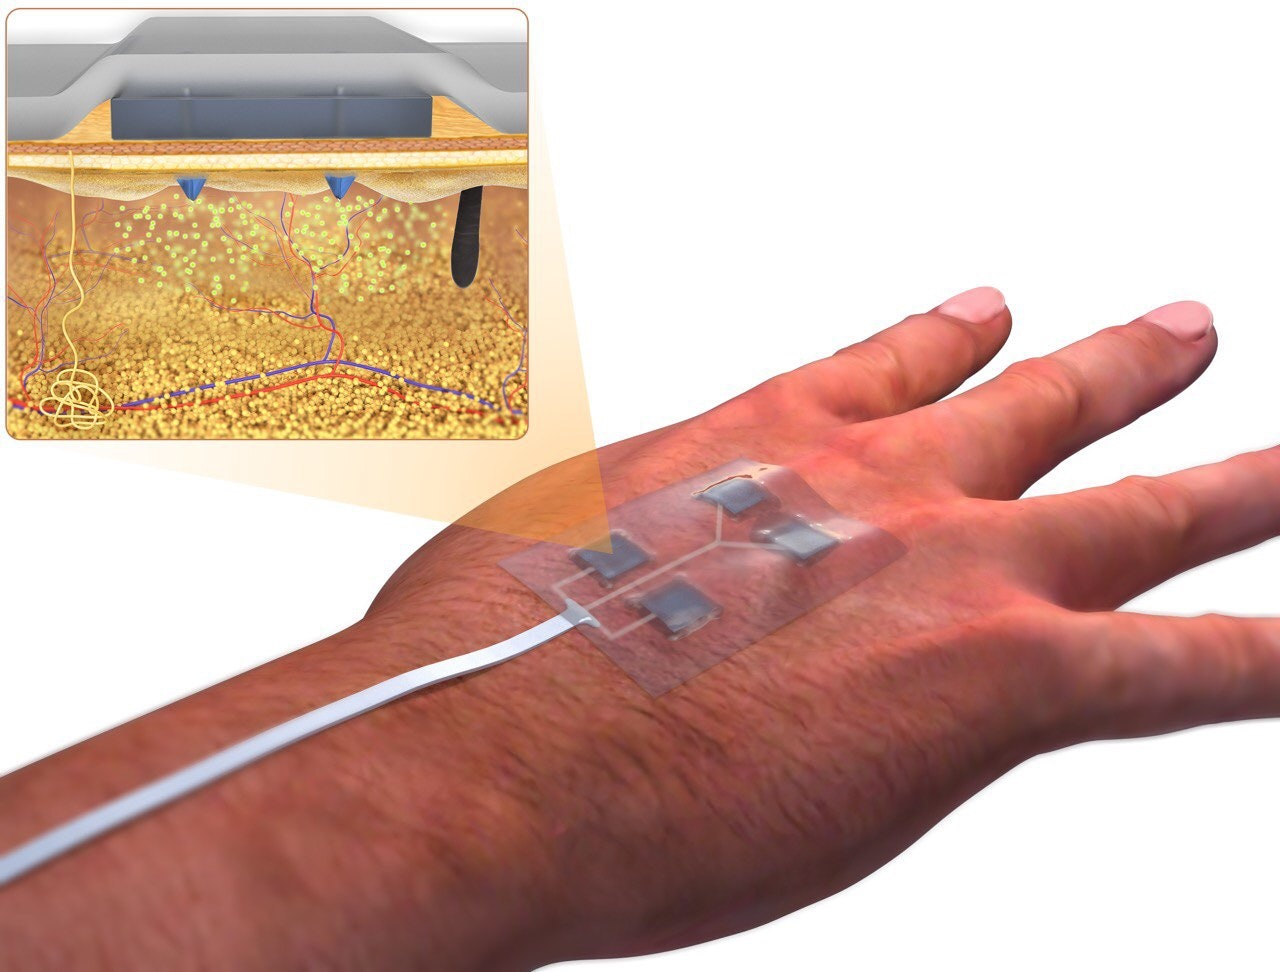 Wirelessly-Controlled Bandage Help Heal Wounds That Won't Heal